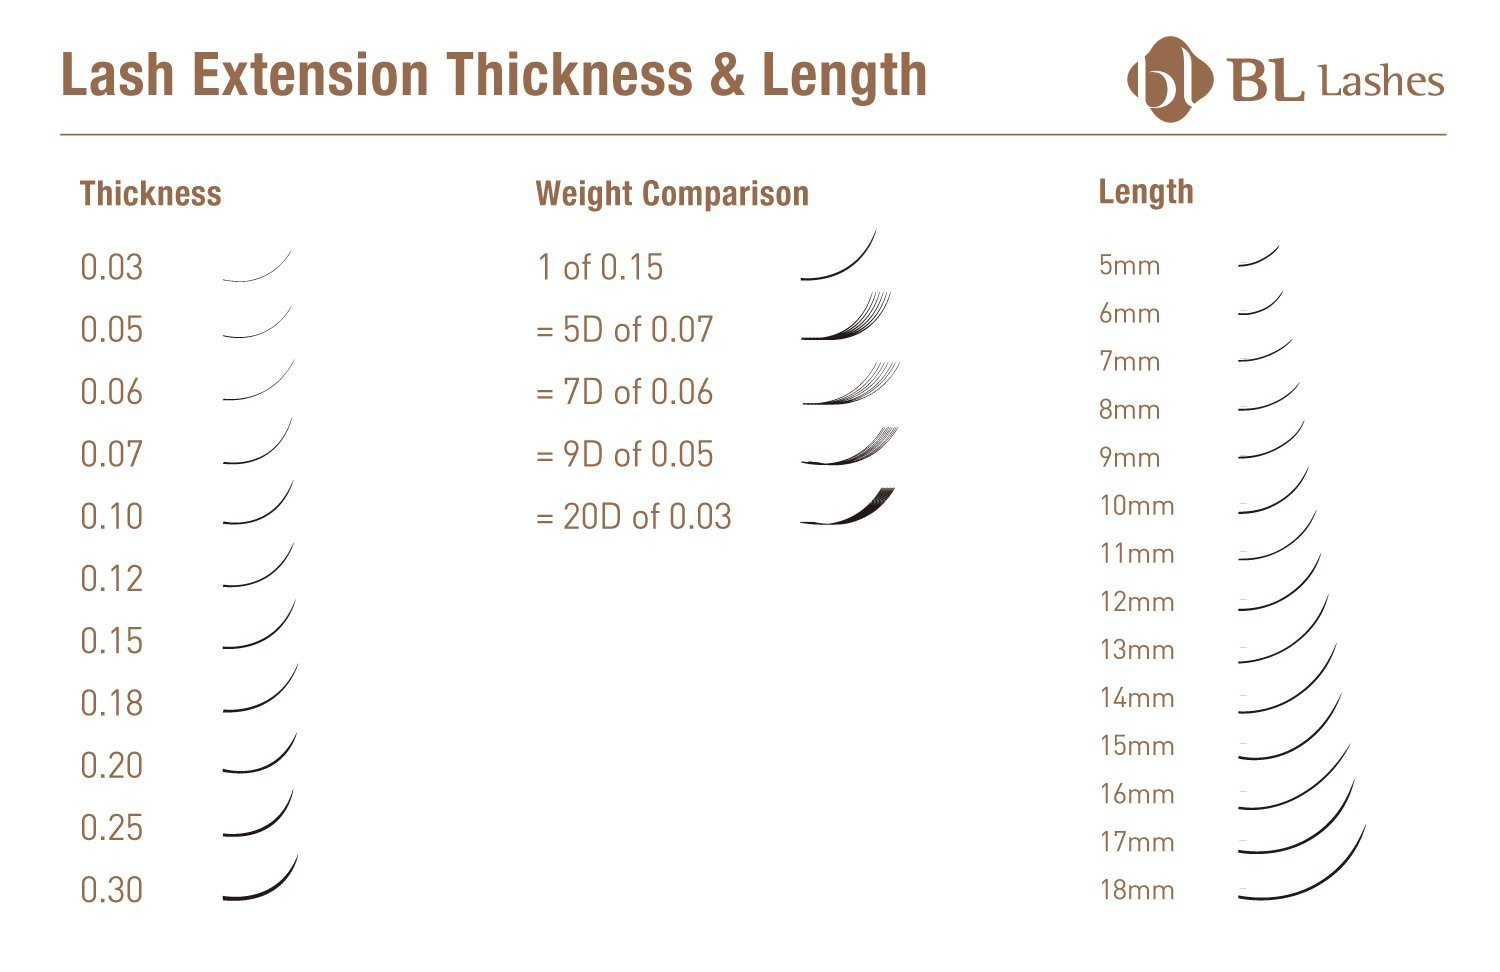 mink Lash extension thickness and weigh by BL and Blink lashes - eyelash extension supplies from South Korea